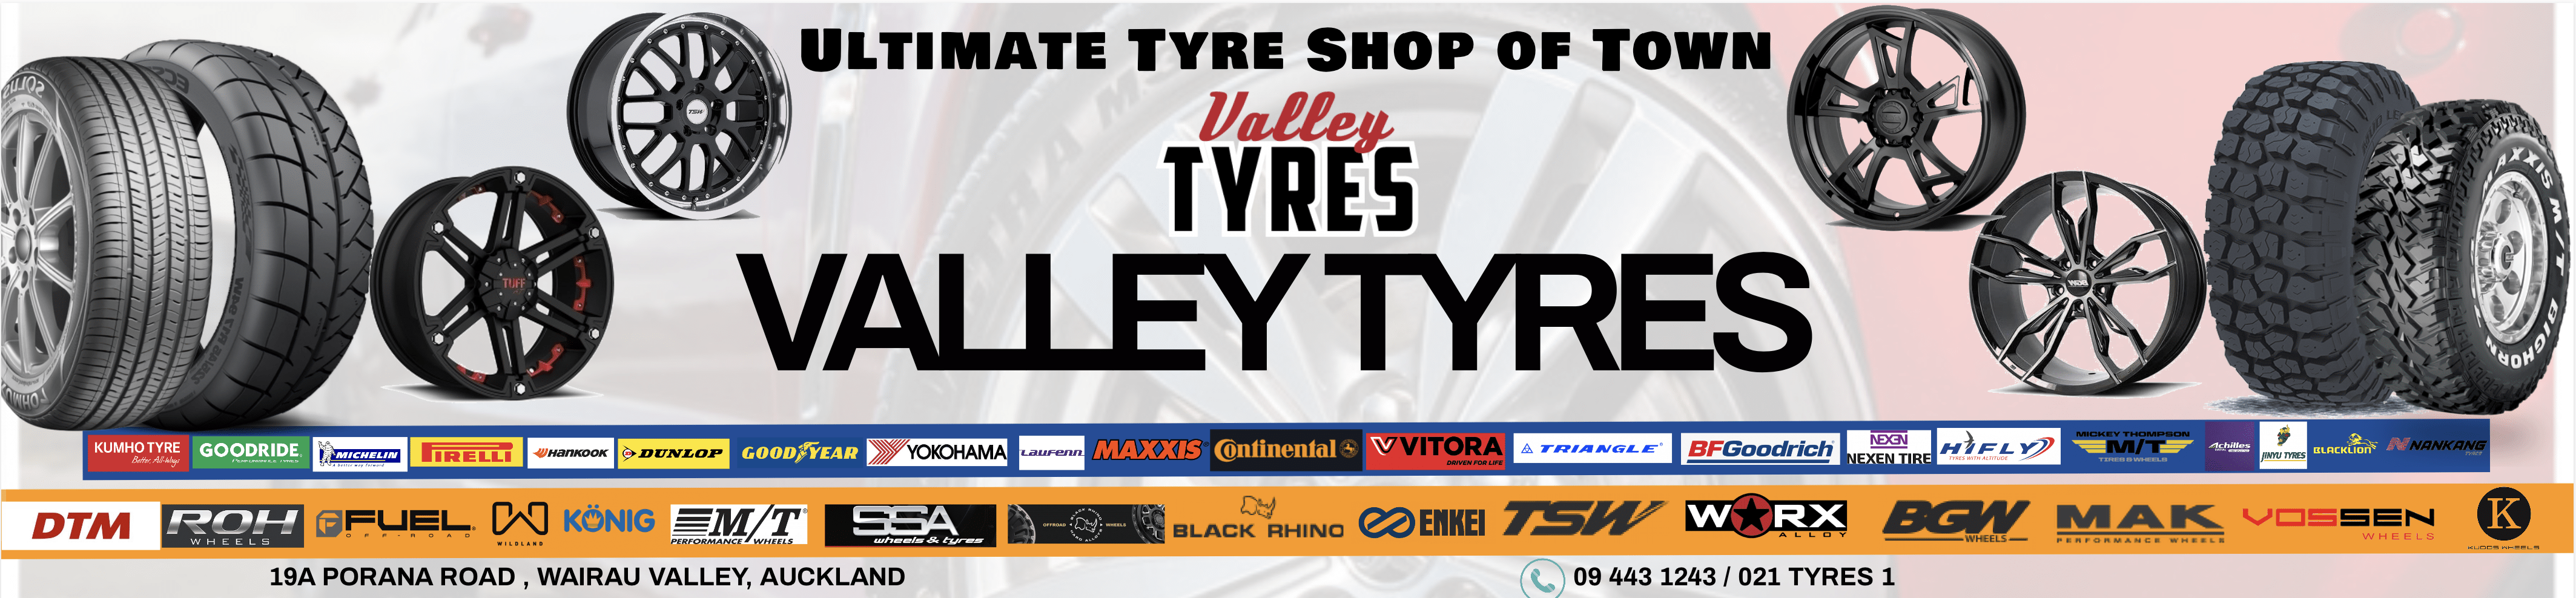 Valley Tyres Cheapest Tyre in town